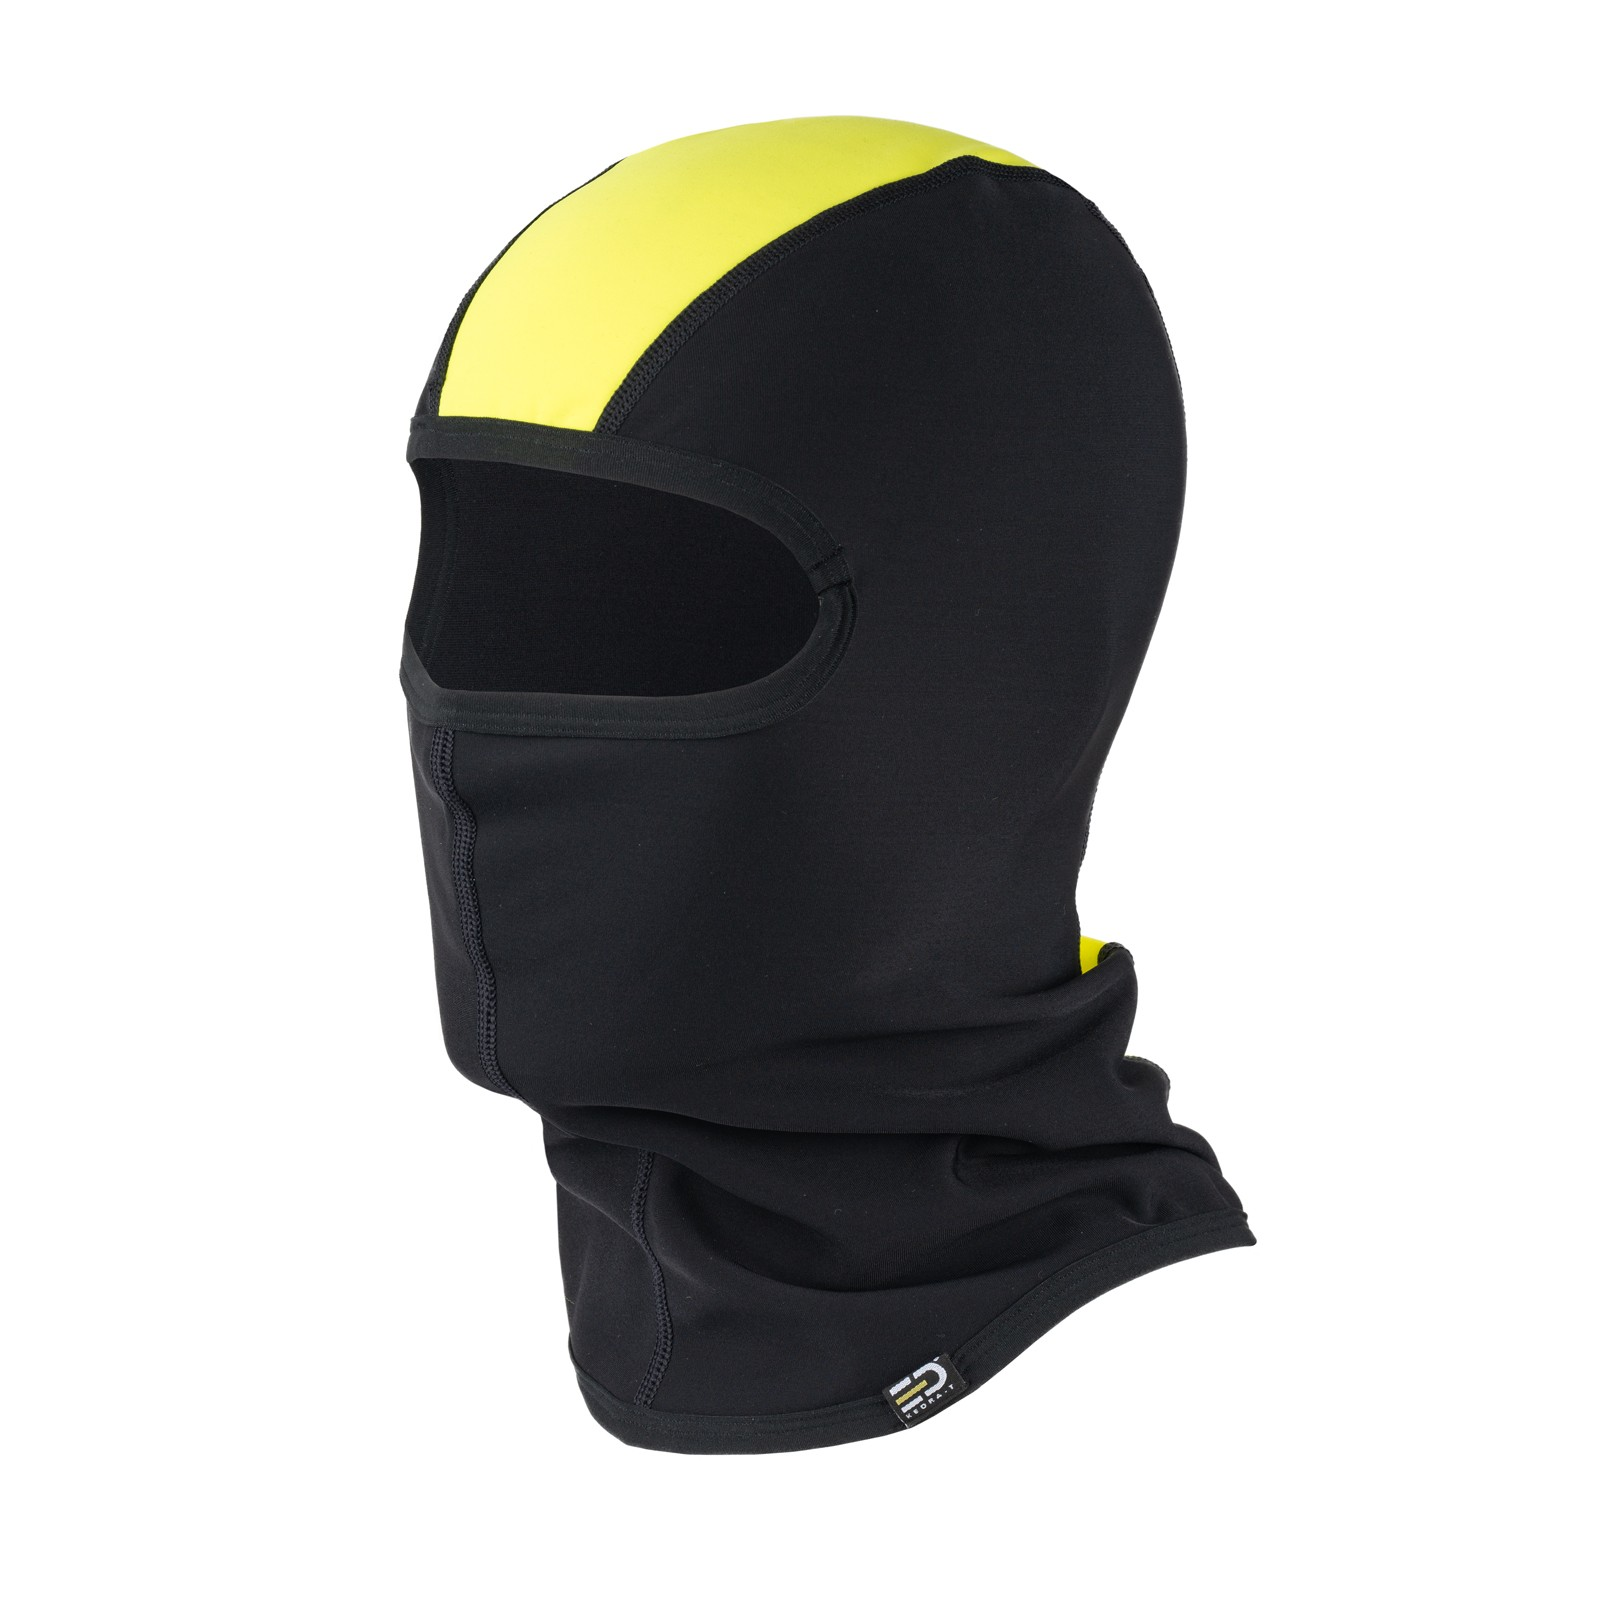 Helmet Liner Technical Fleece Black&Yellow Fluo